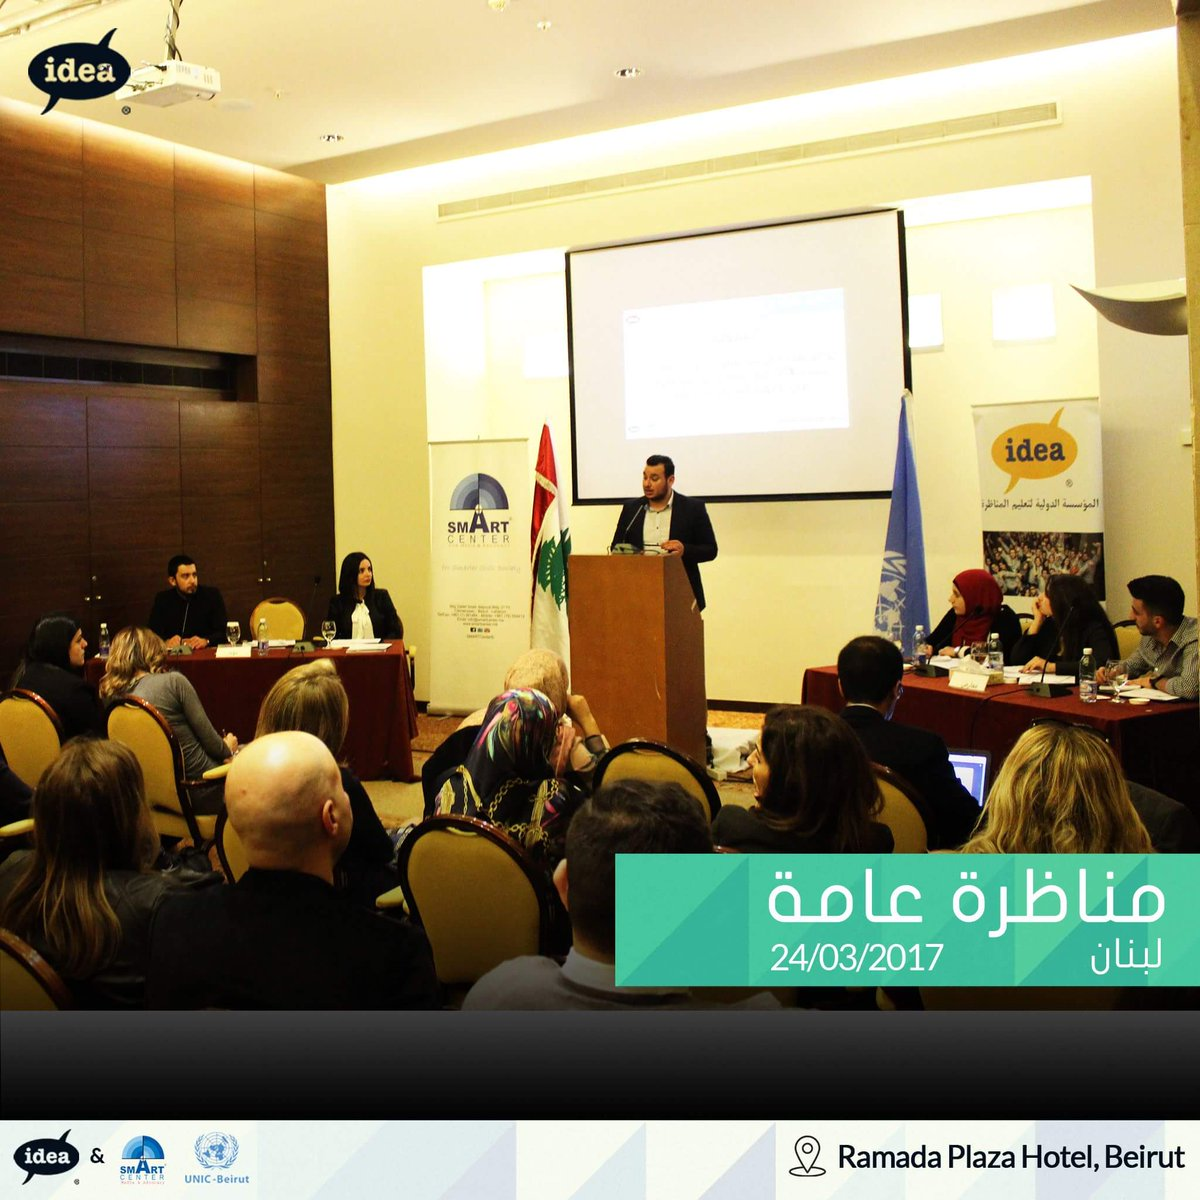 Public Debate in Beirut: &quot; THB the quota of women seats in the Lebanese parliament election law should be 30%&quot;  #IDEAMENA #Debate <br>http://pic.twitter.com/2TR3mXAXQm